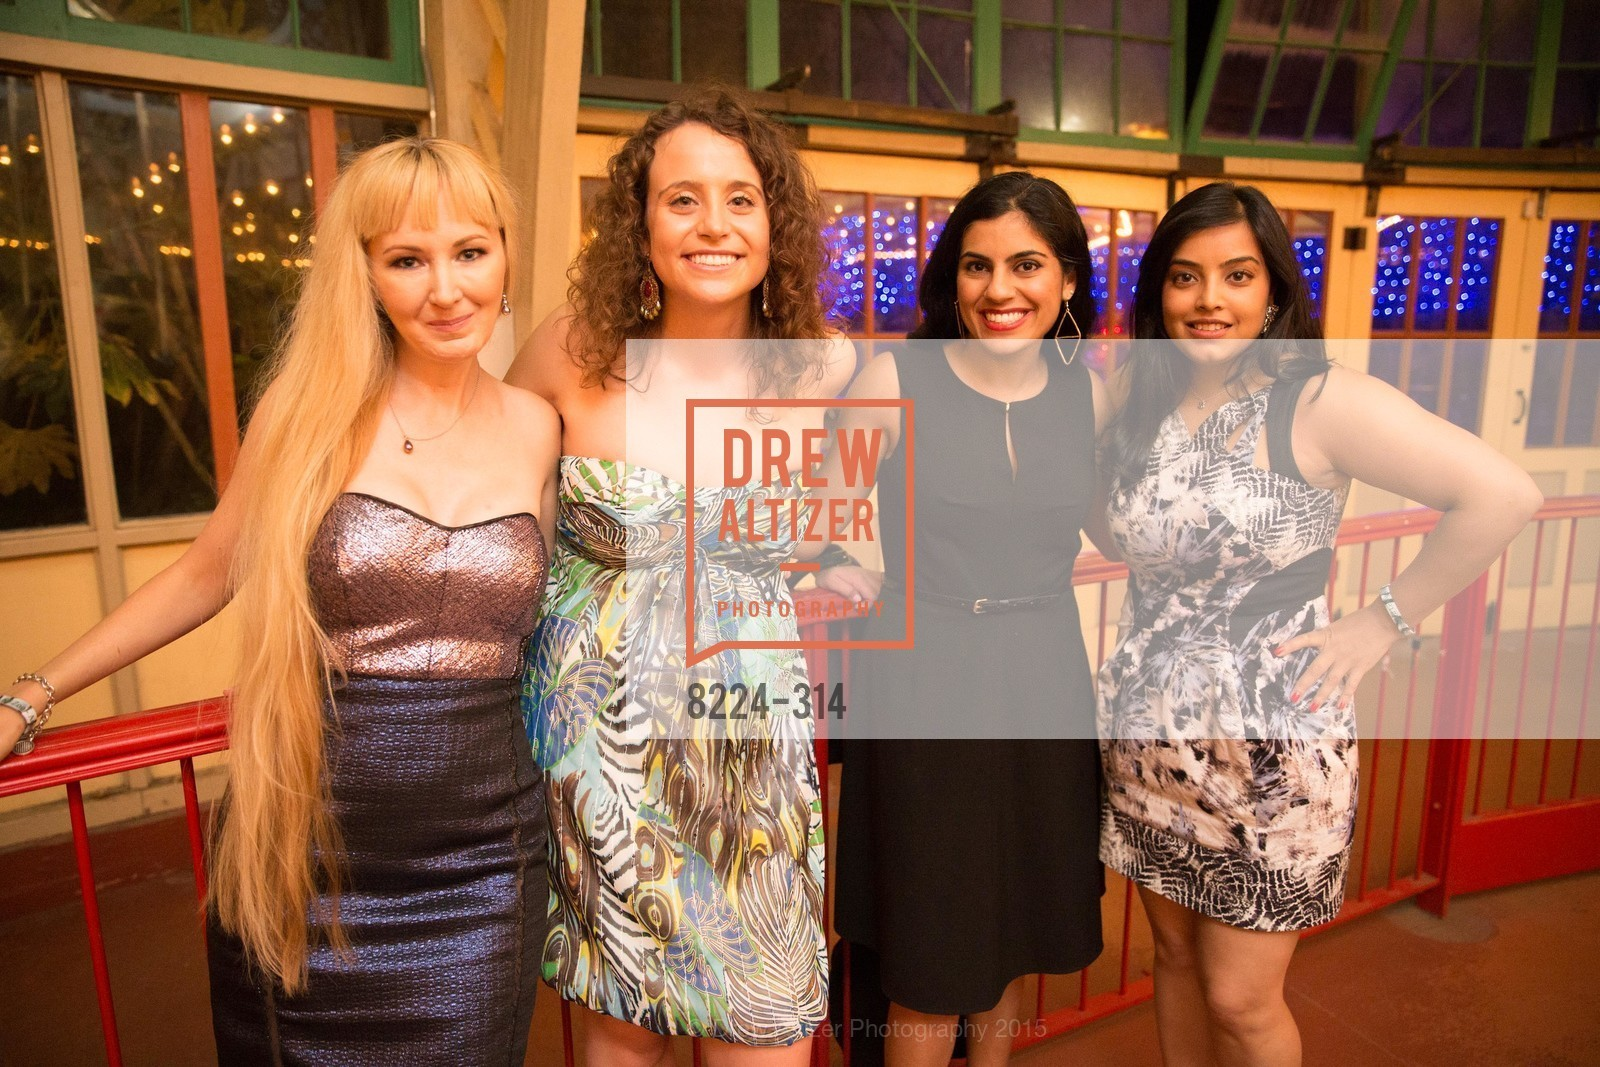 Shannyn Bessoni, Allison Tompkins, Pujeeta Chowdhary, Paayal Gupta, San Francisco Zoo Fur Ball, San Francisco Zoo, September 25th, 2015,Drew Altizer, Drew Altizer Photography, full-service agency, private events, San Francisco photographer, photographer california